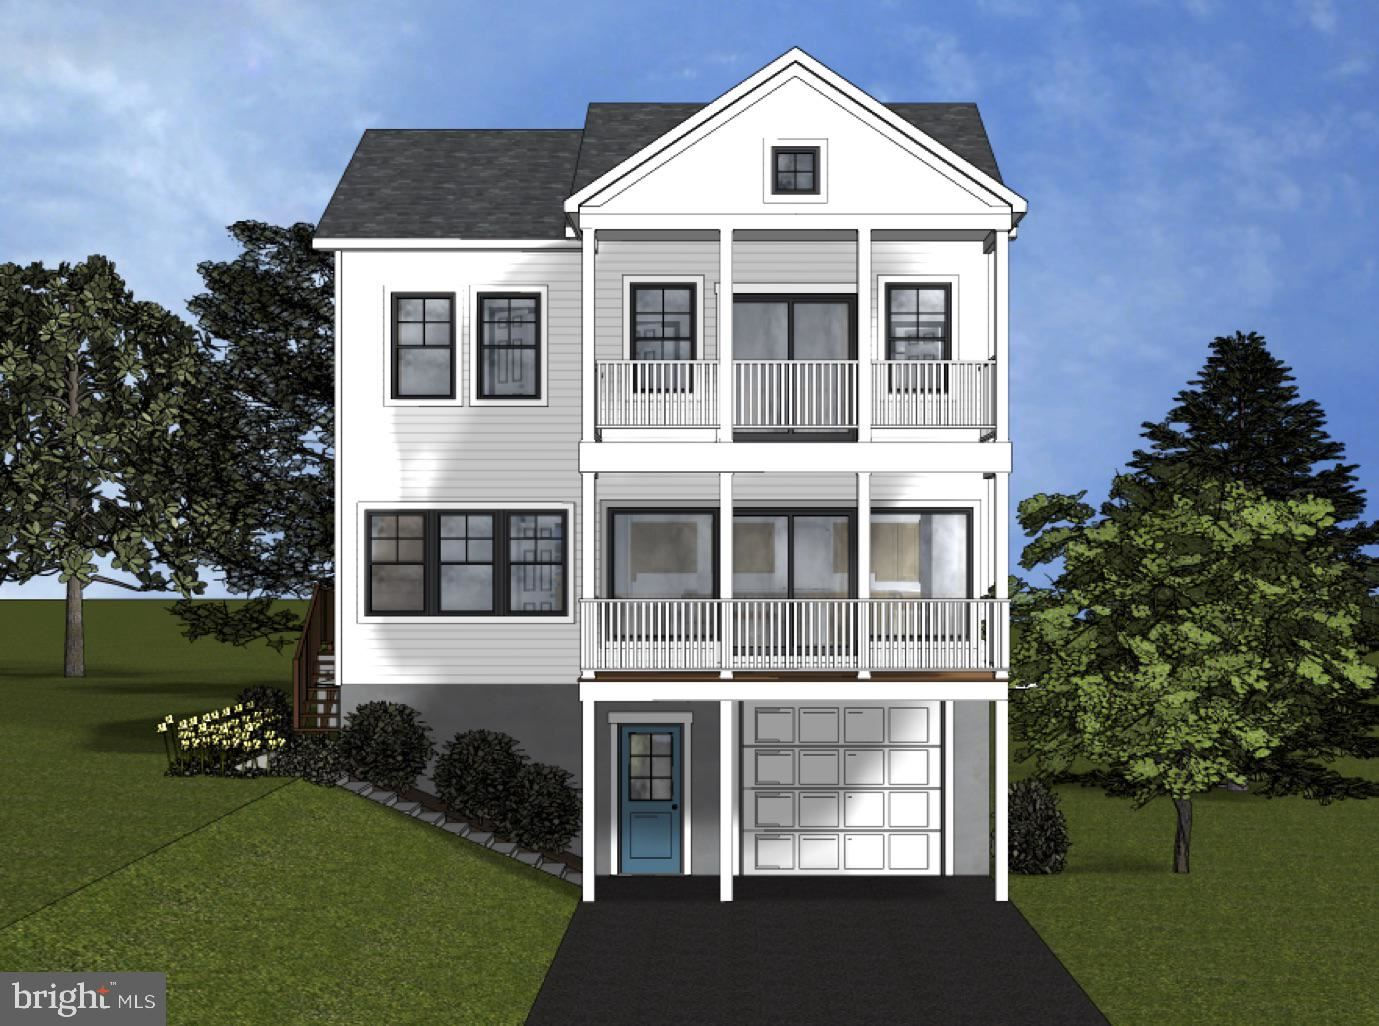 BRUCE AVE, Annapolis, MD 21403 - MLS#: MDAA438244